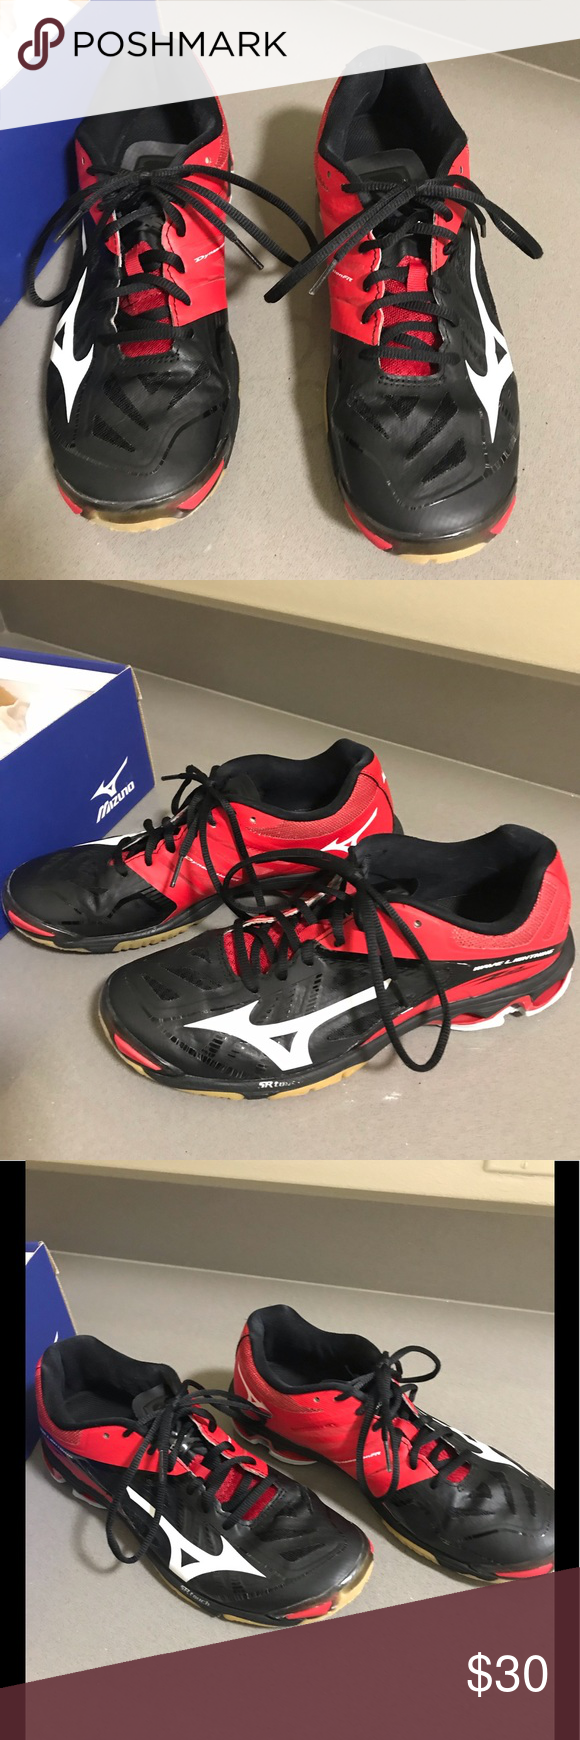 Mizuno Womens Volleyball Shoes Volleyball Shoes Women Volleyball Mizuno Shoes